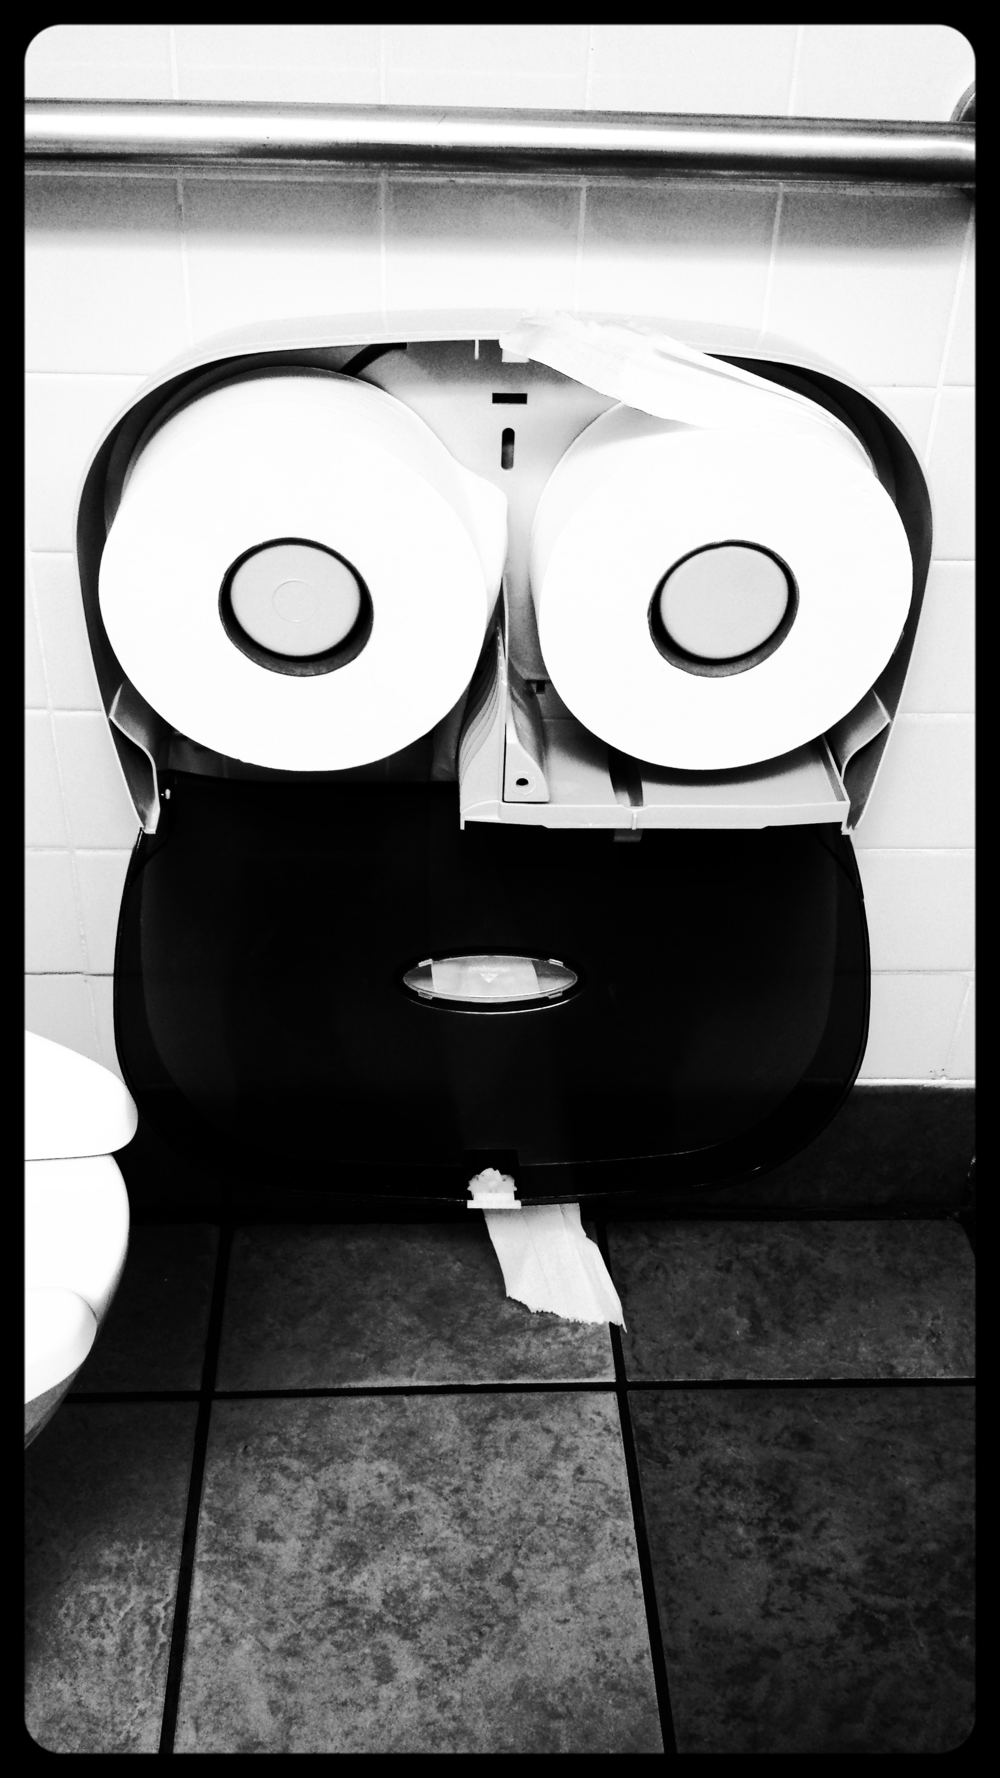 Toiletpaper dispenser, NY State Thruway